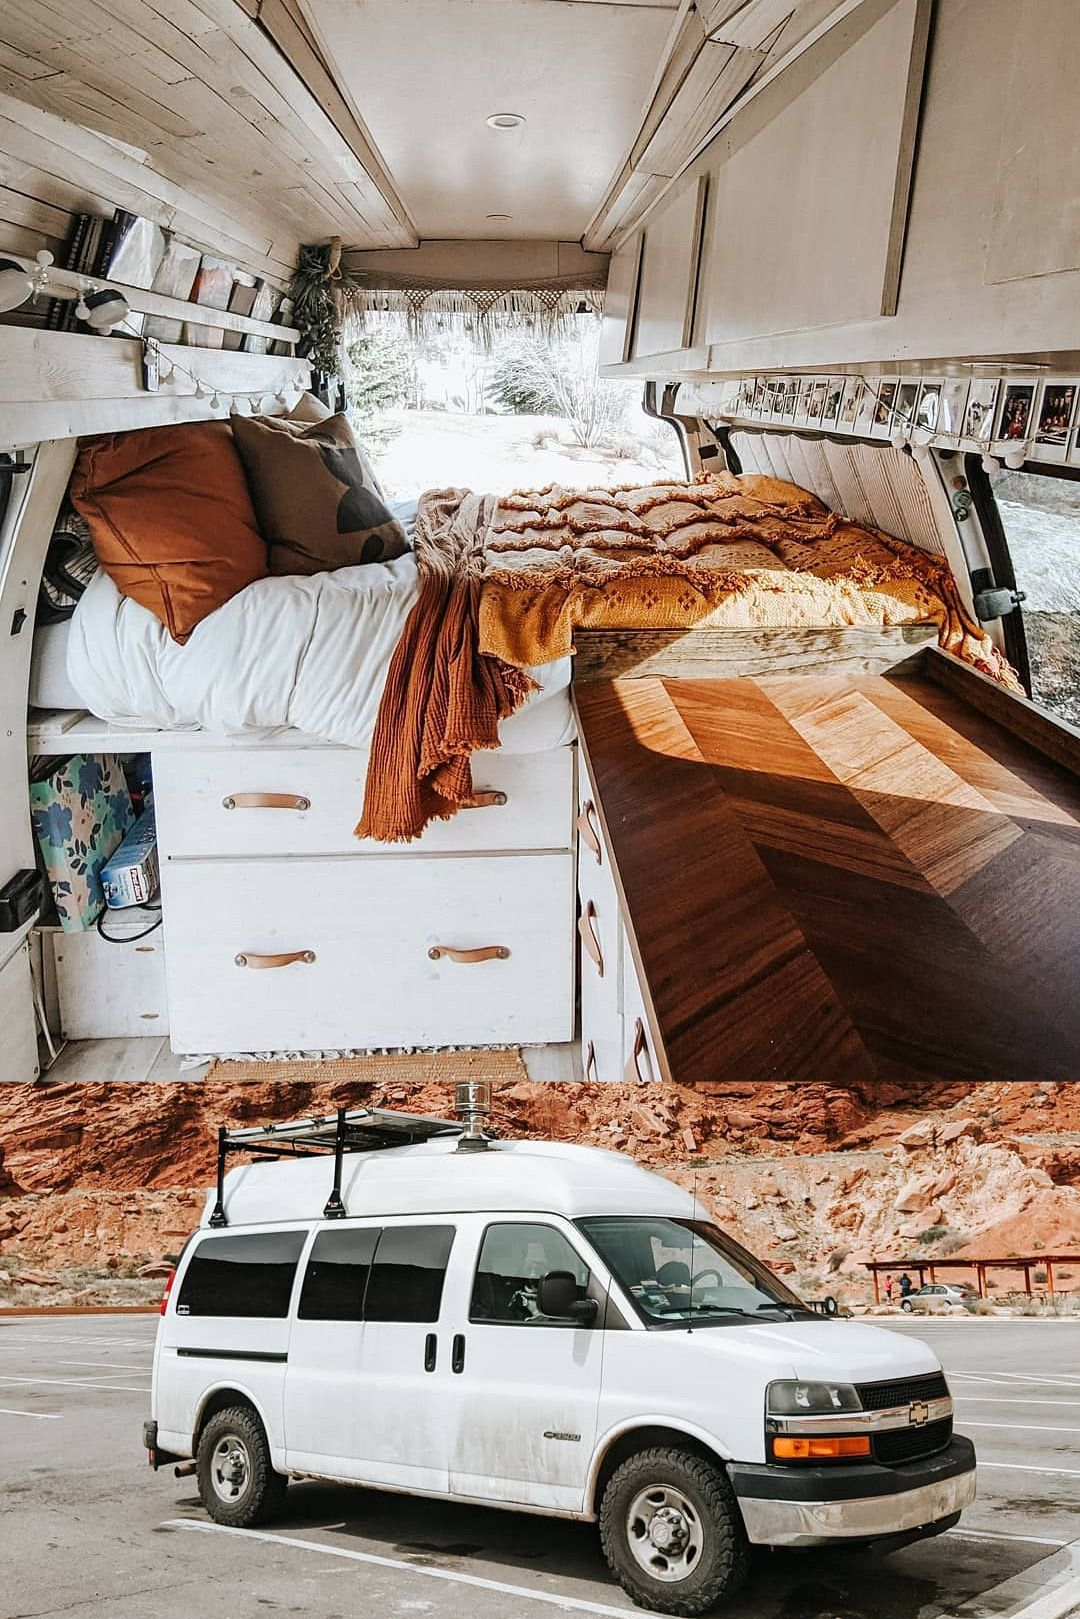 Stunning Self Converted 06 Chevy Express Van In 2020 Chevy Express Chevy Astro Van Van Life Diy